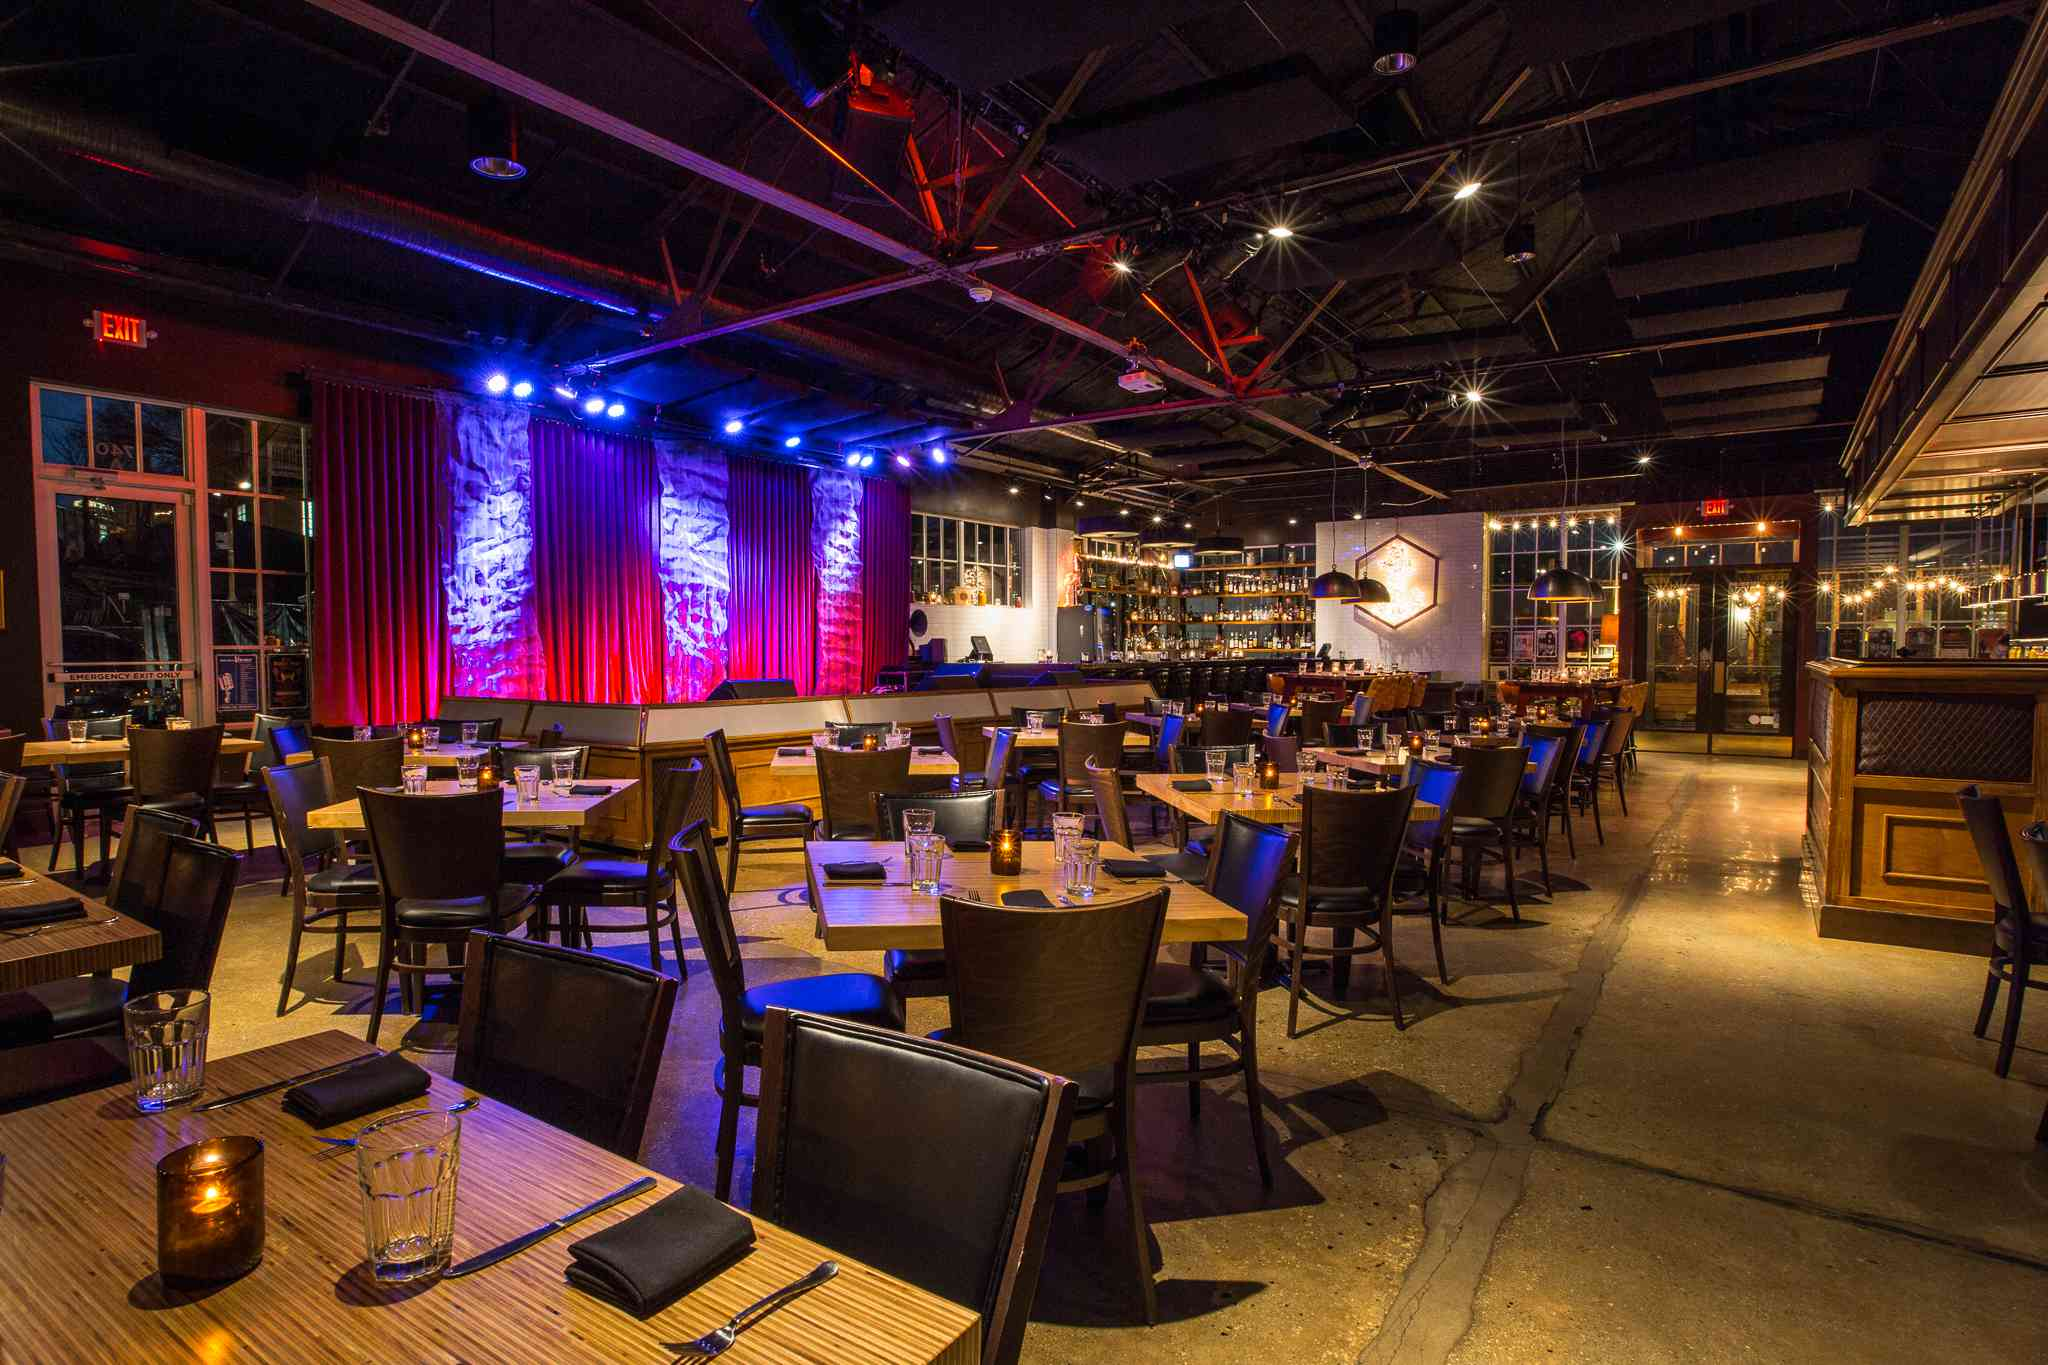 Interior of Venkman's in Atlanta. There are dozens of four top tables and a medium sized stage with a curtain behind on on the back wall